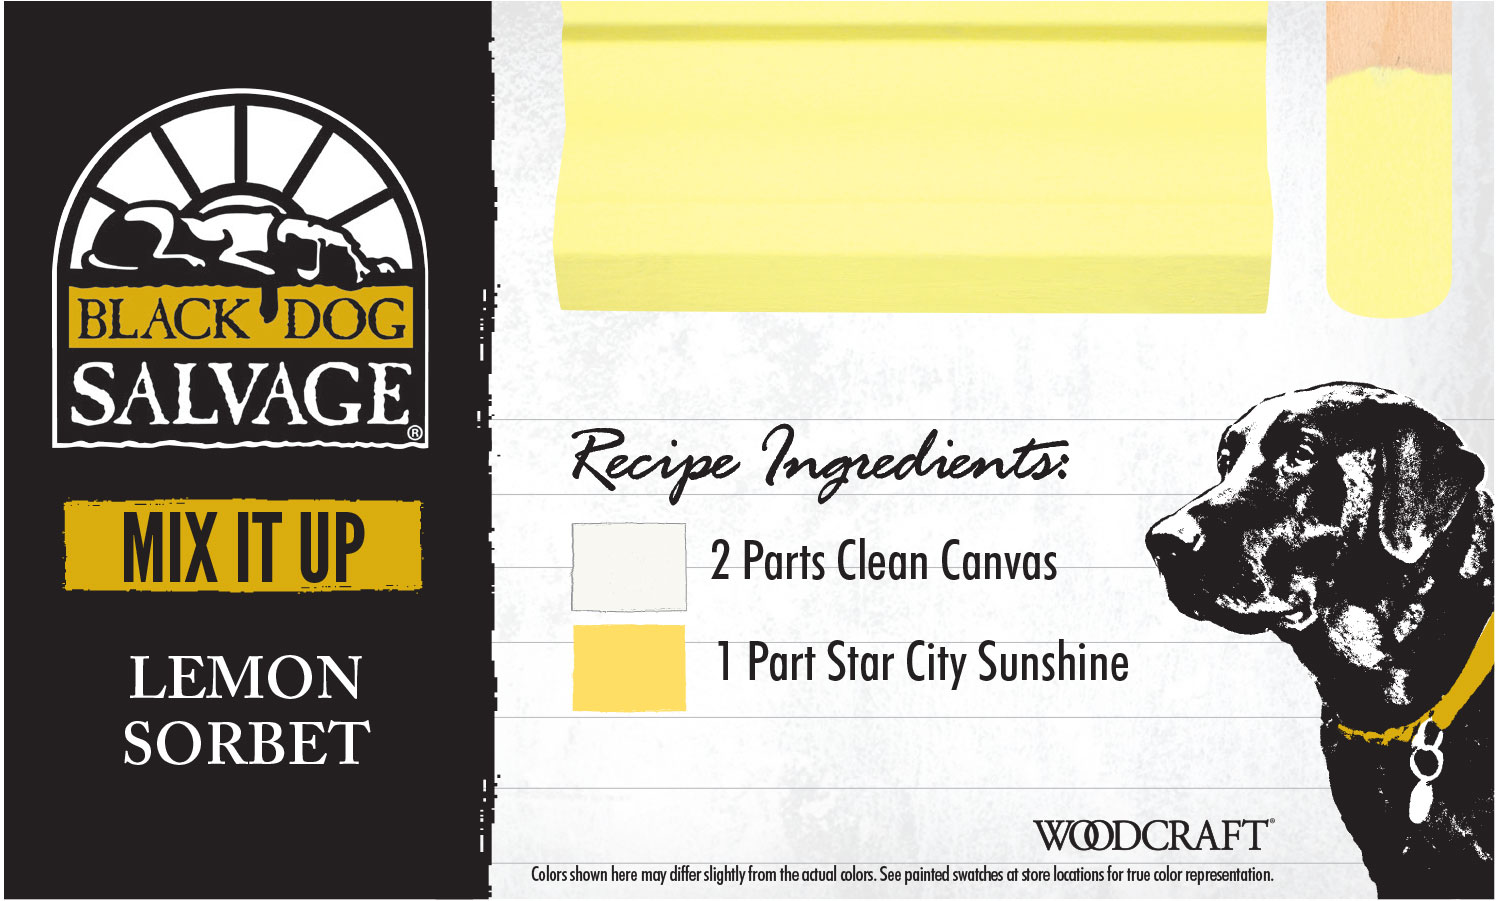 """""""Lemon Sorbet"""" is made from 2 Parts """"Clean Canvas"""" 1 Part """"Star City Sunshine"""""""